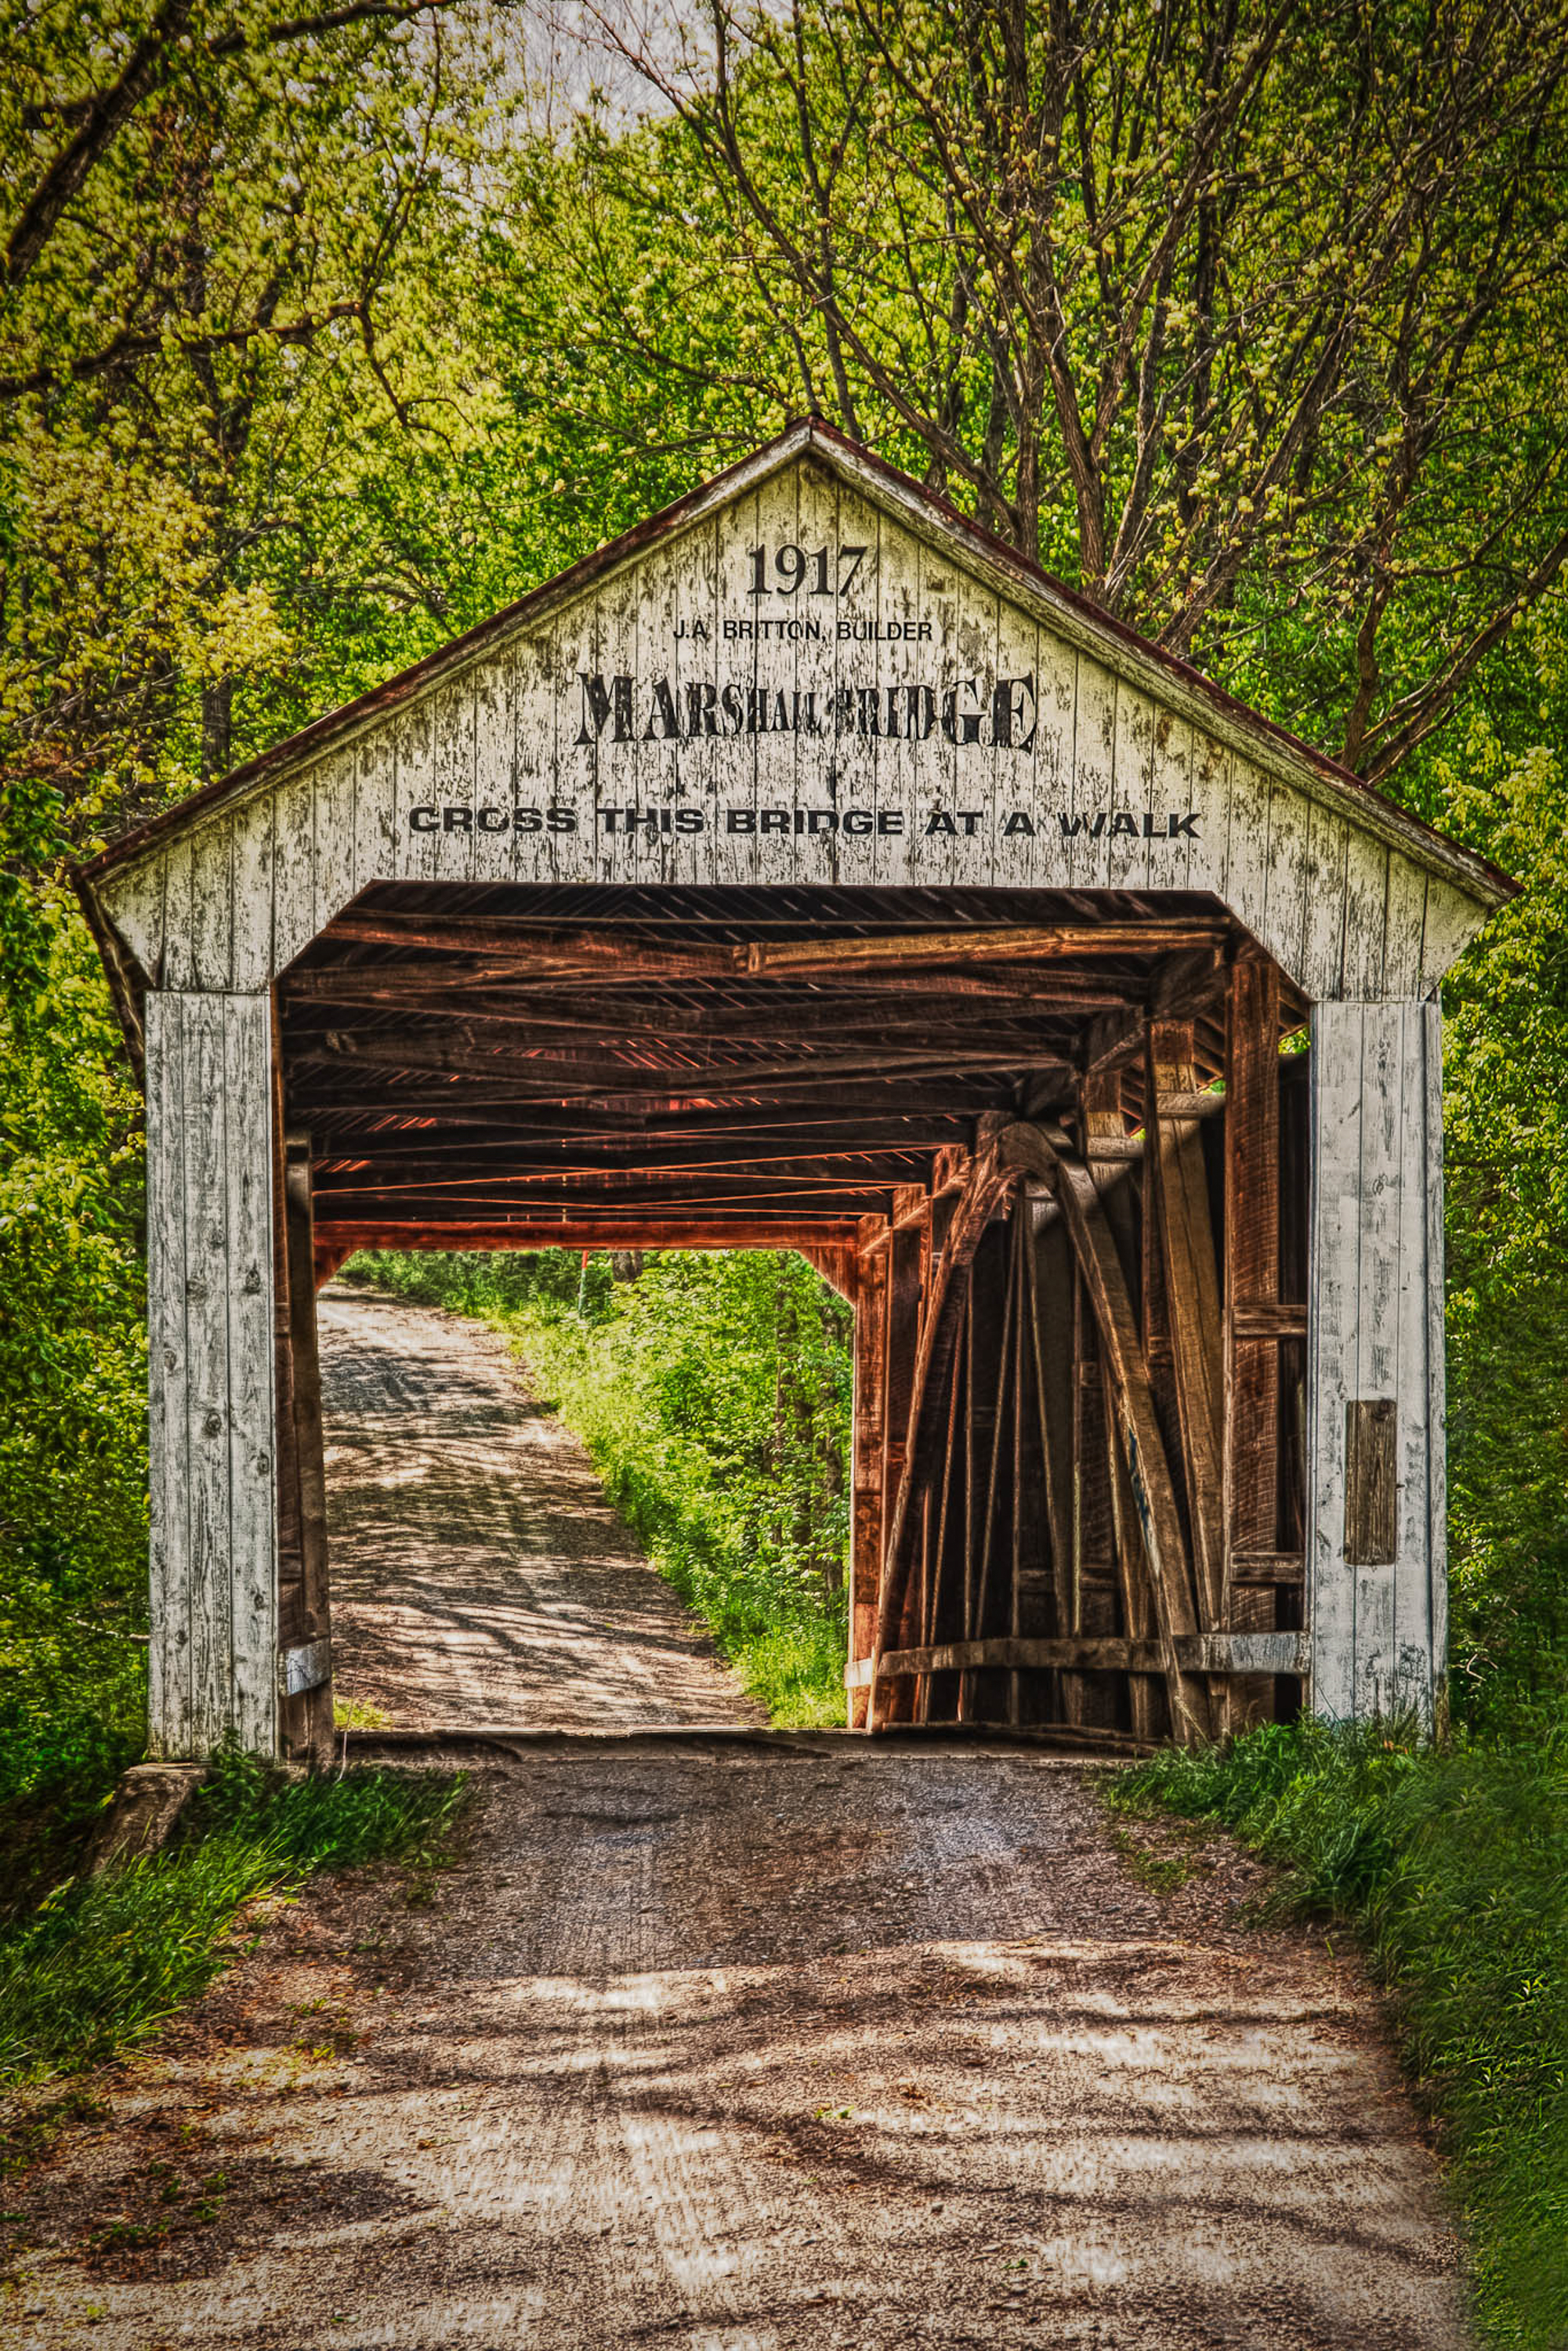 Marshall Bridge